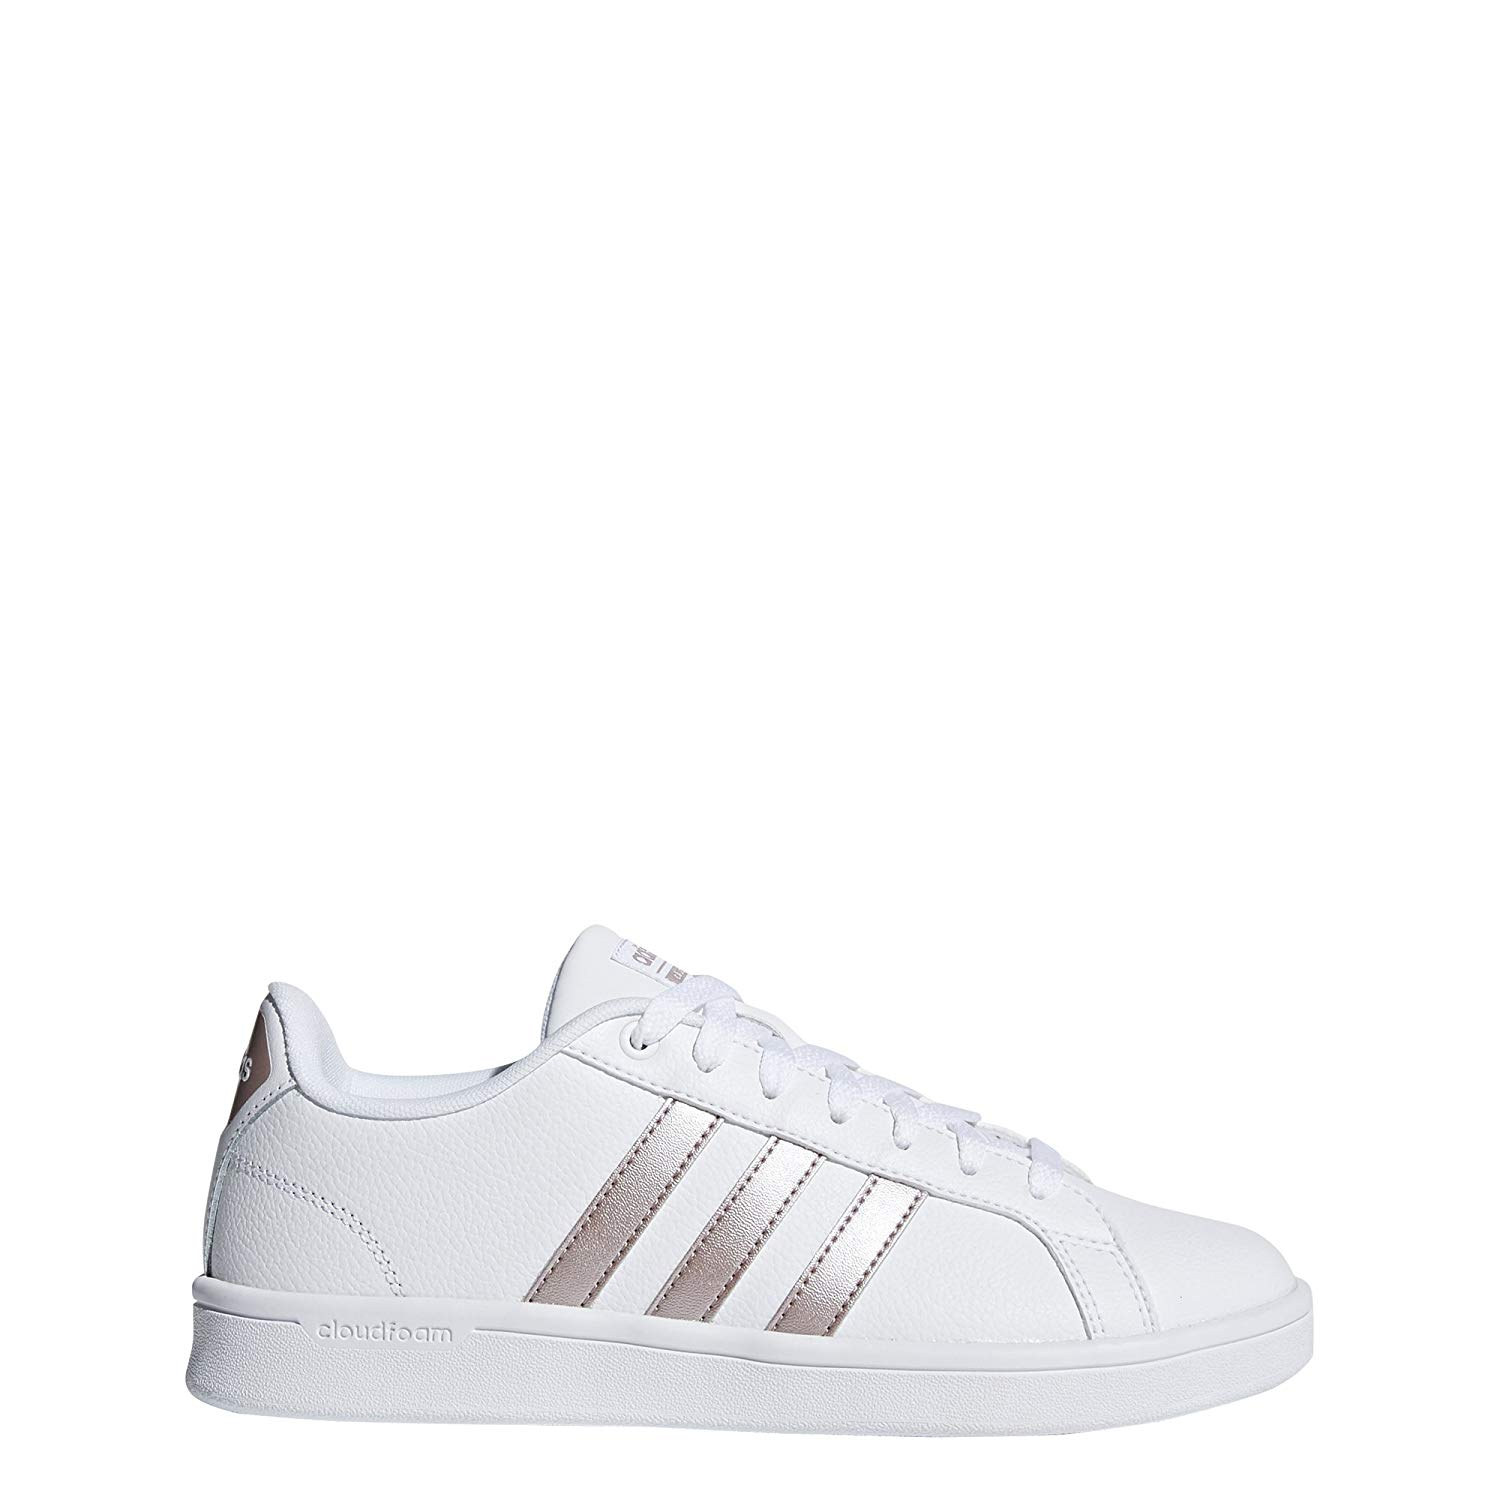 100% hoge kwaliteit te koop nieuwe aankomst Details about Adidas Womens cf advantage w Low Top Lace Up, White/Vapour  Grey/White, Size 6.0